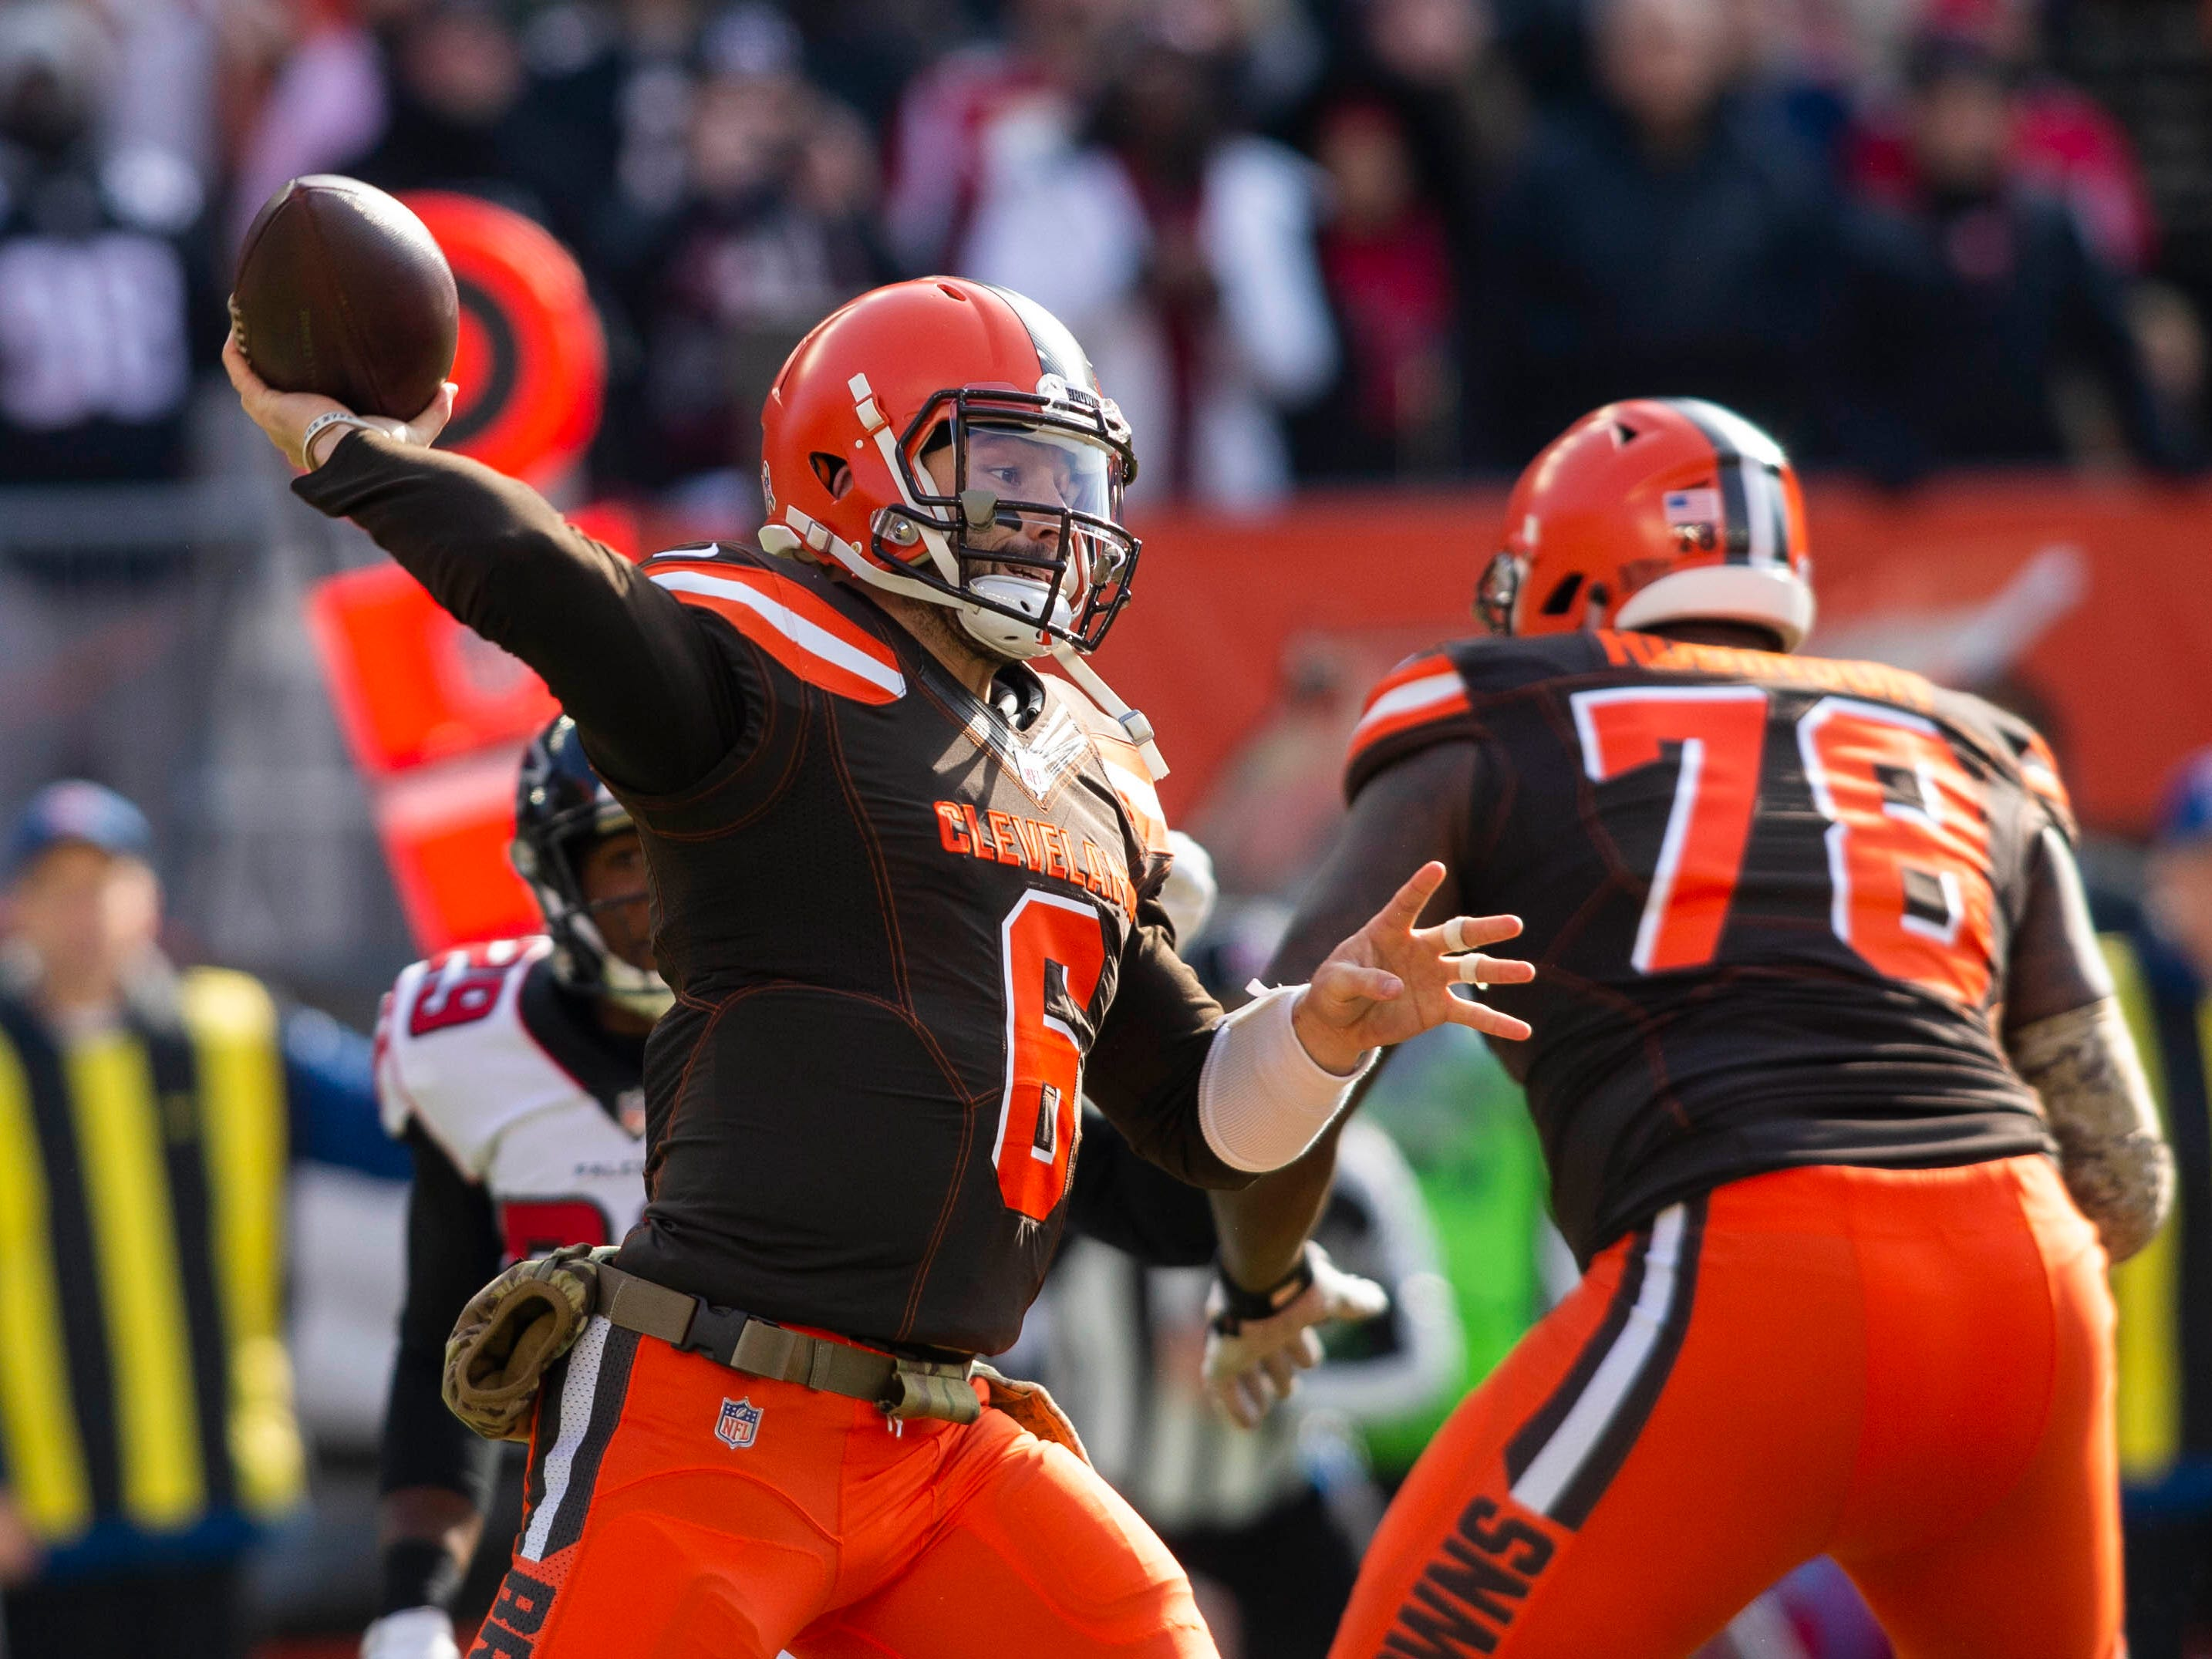 Cleveland Browns QB Baker Mayfield, Barstool Sports fundraising for Special Olympics